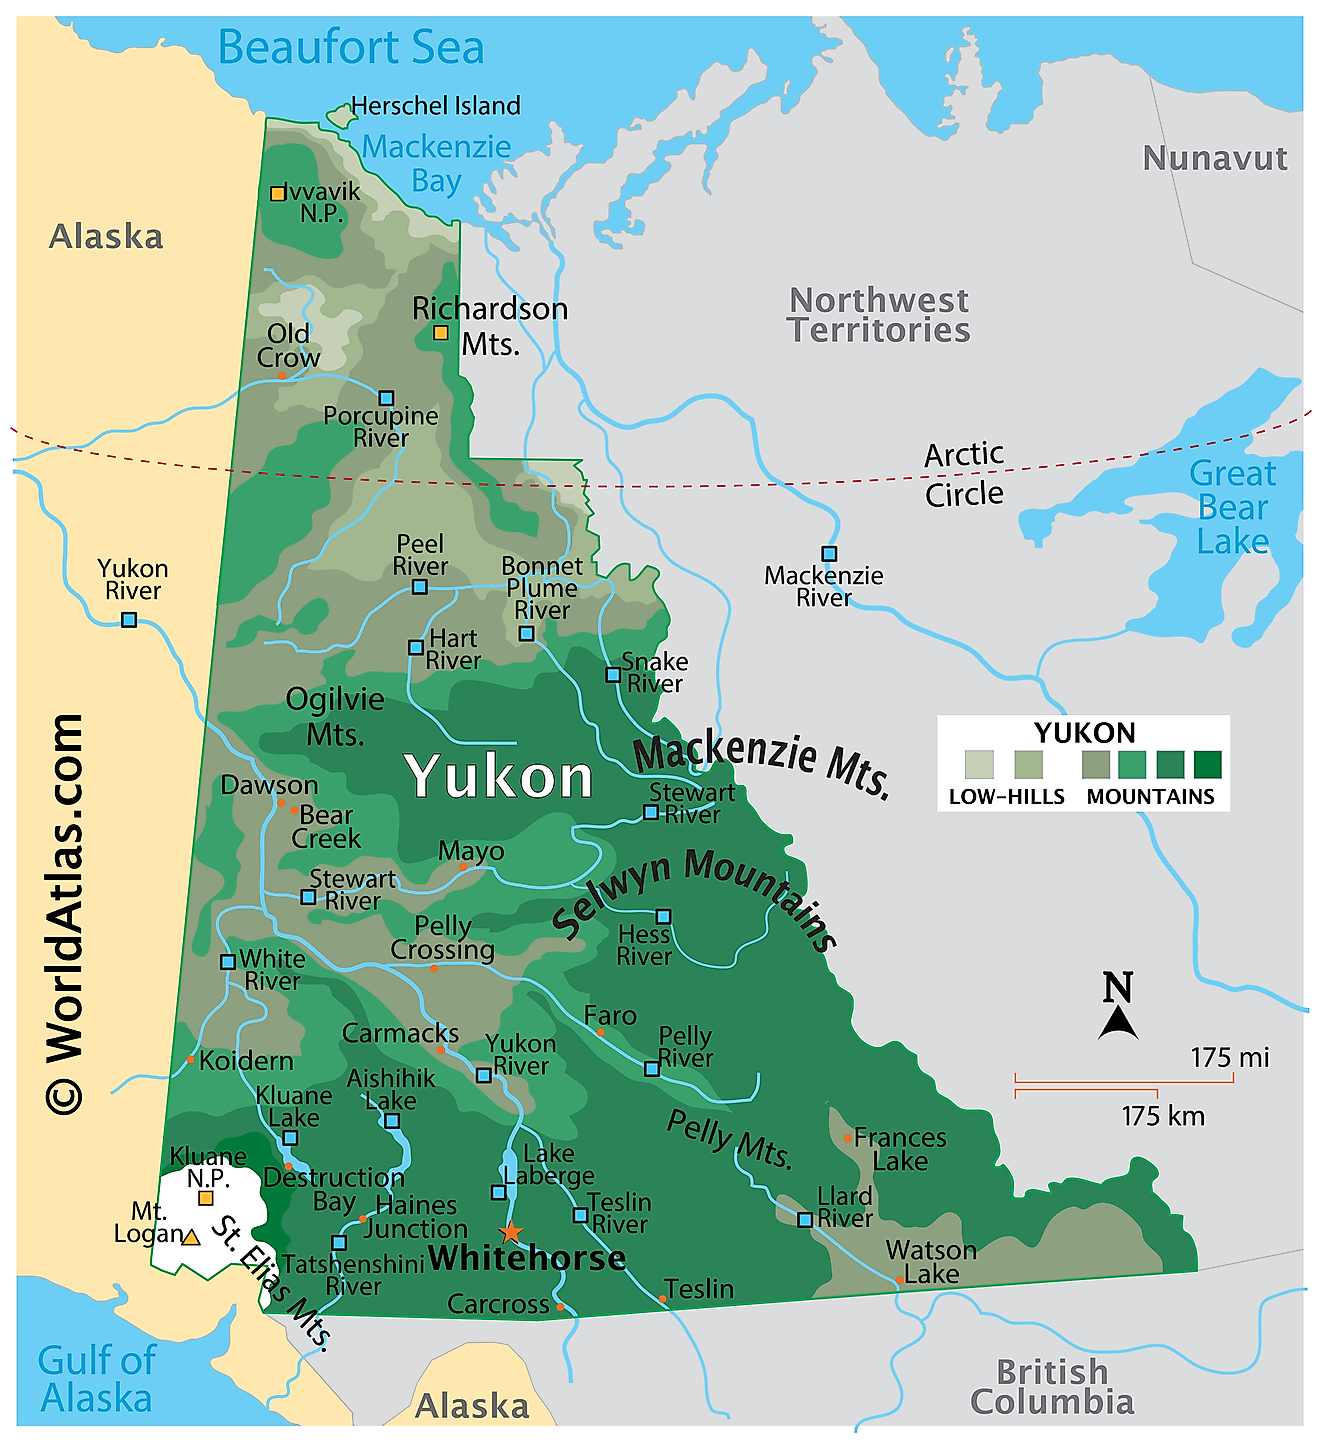 Physical Map of Yukon. It shows the physical features of Yukon, including mountain ranges, significant rivers and major lakes.